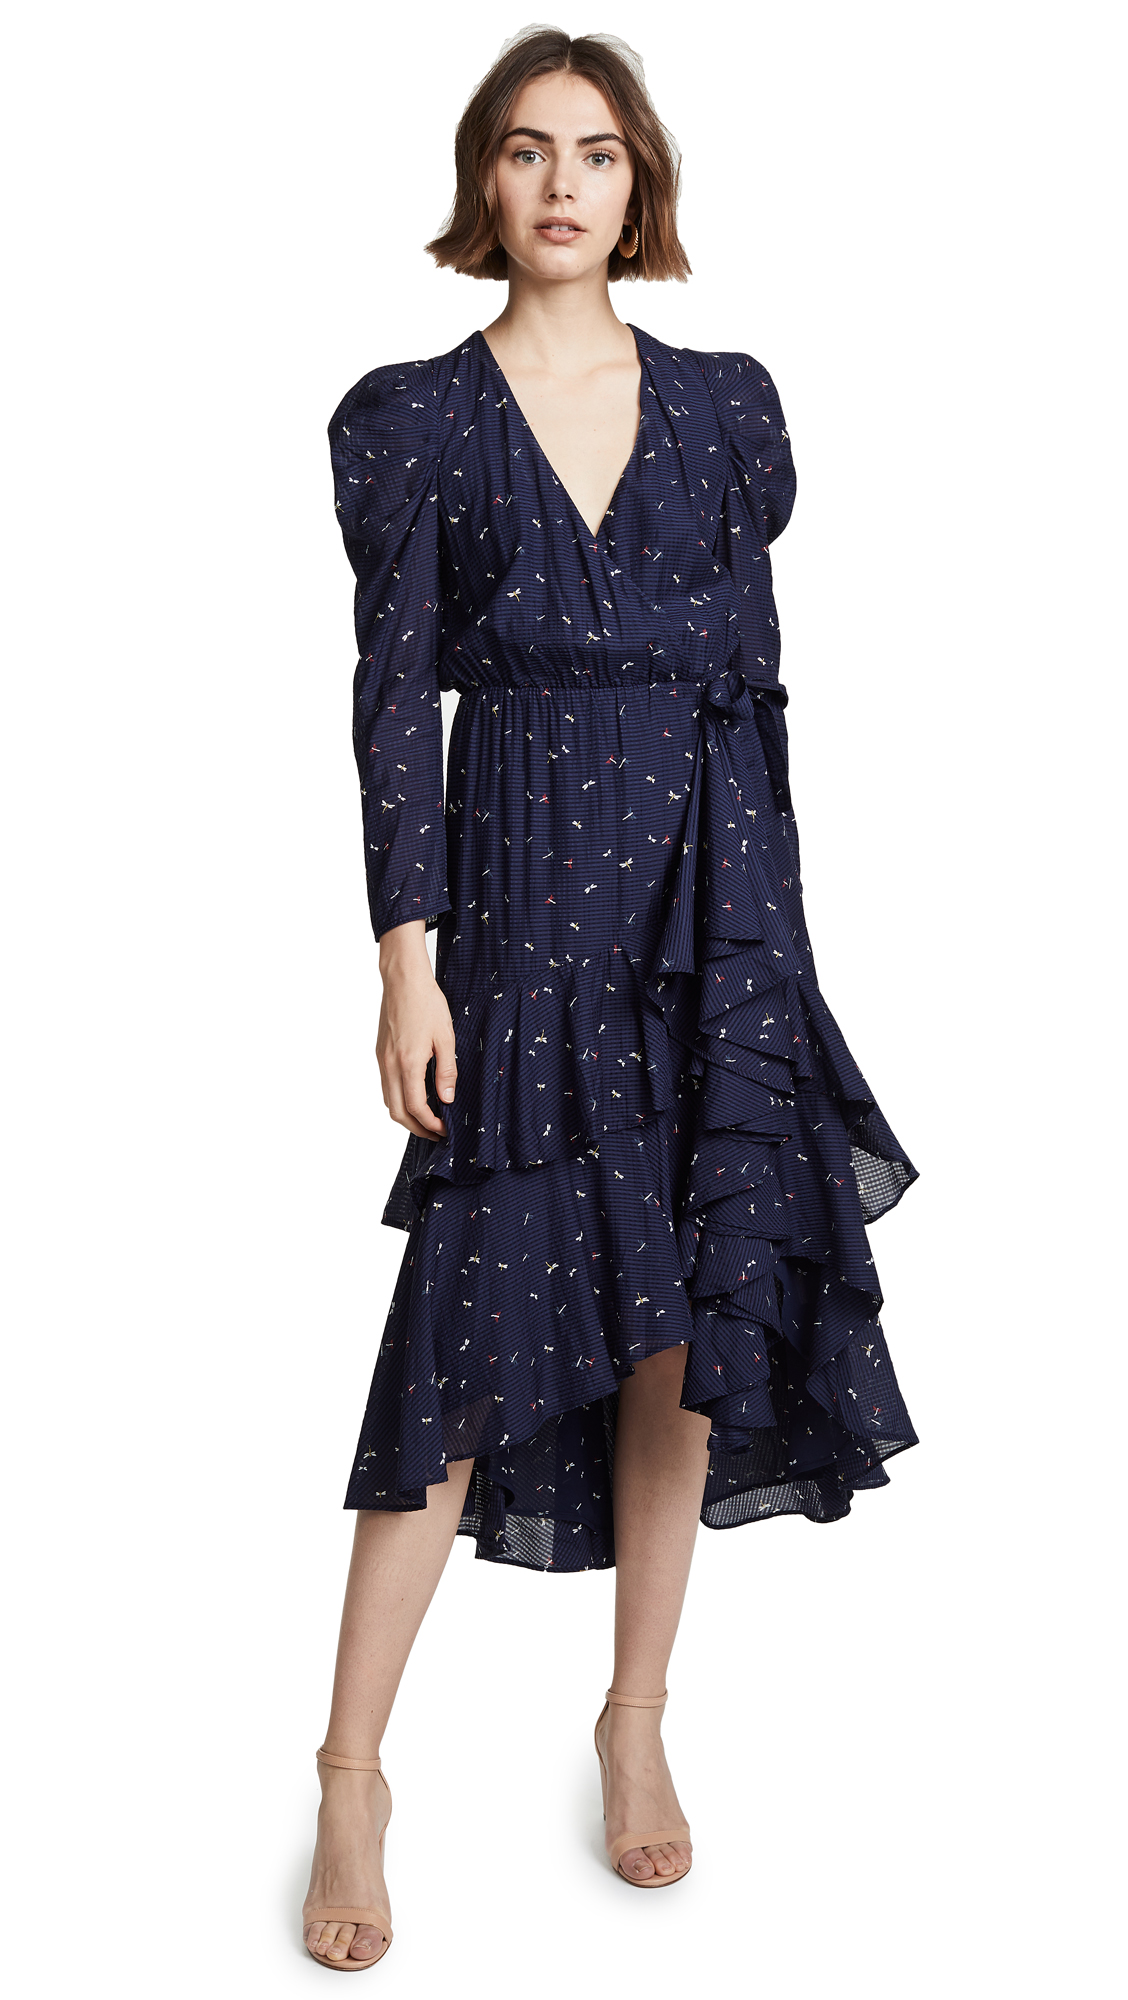 Joie Miraly Dress In Midnight